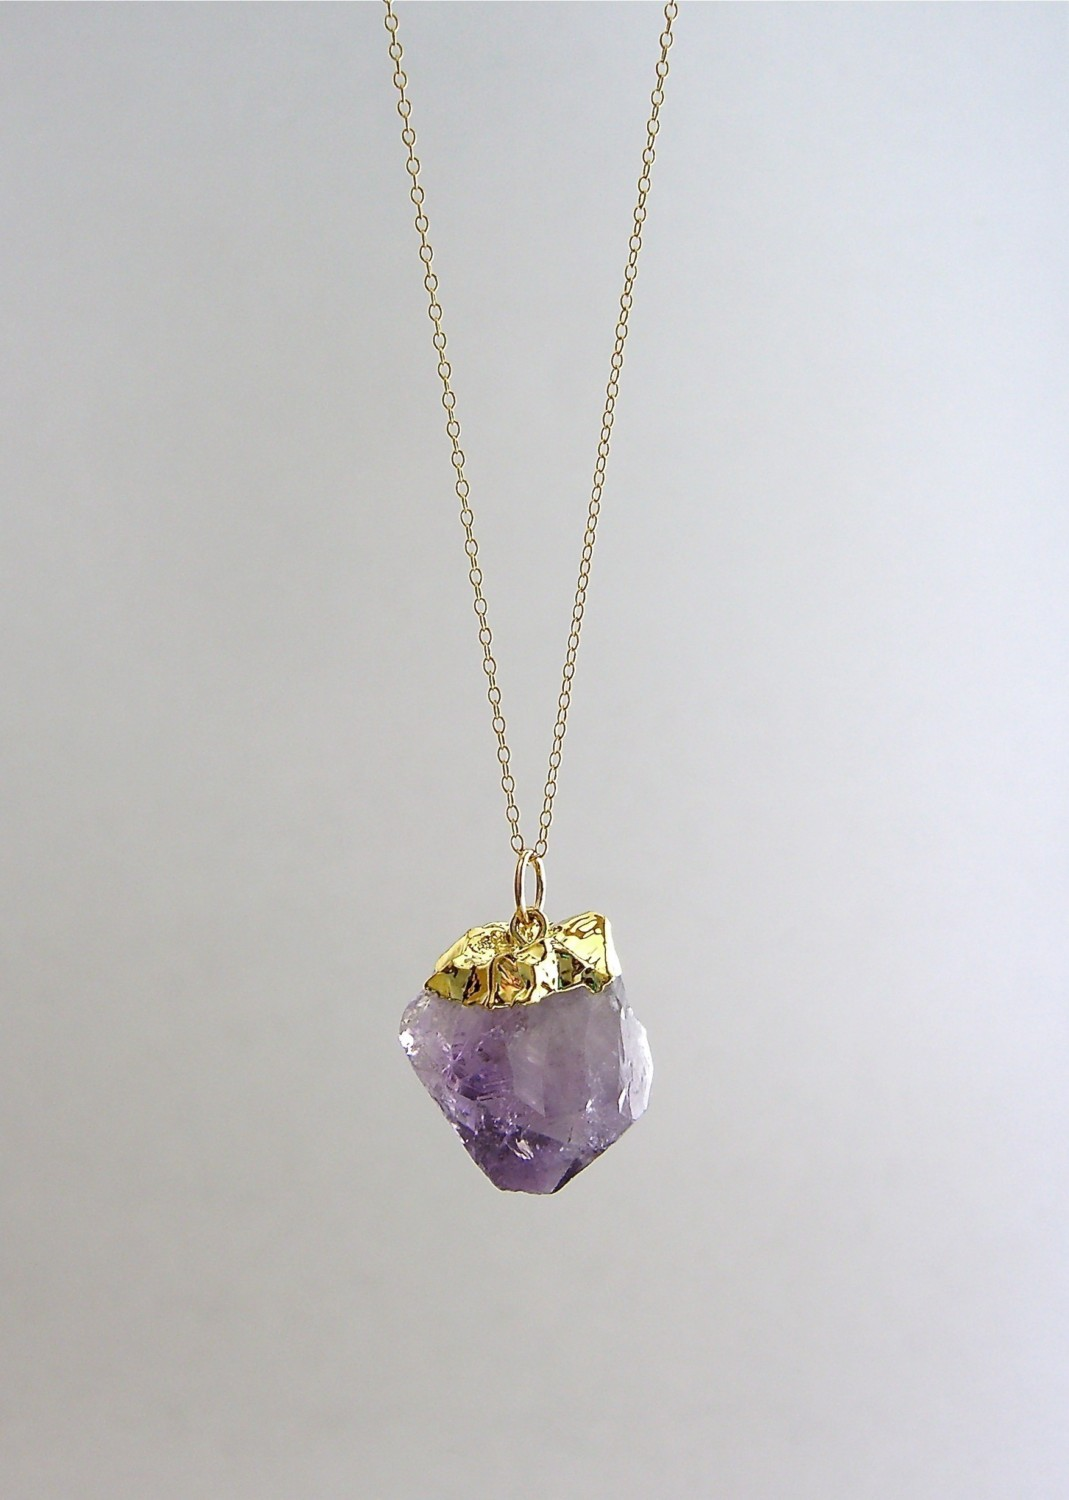 geode charged product amethyst wholesale amatista gilled forma beads small stones pendulum crystal irregular rock lucky raw purple pendant pendants natural gold reiki